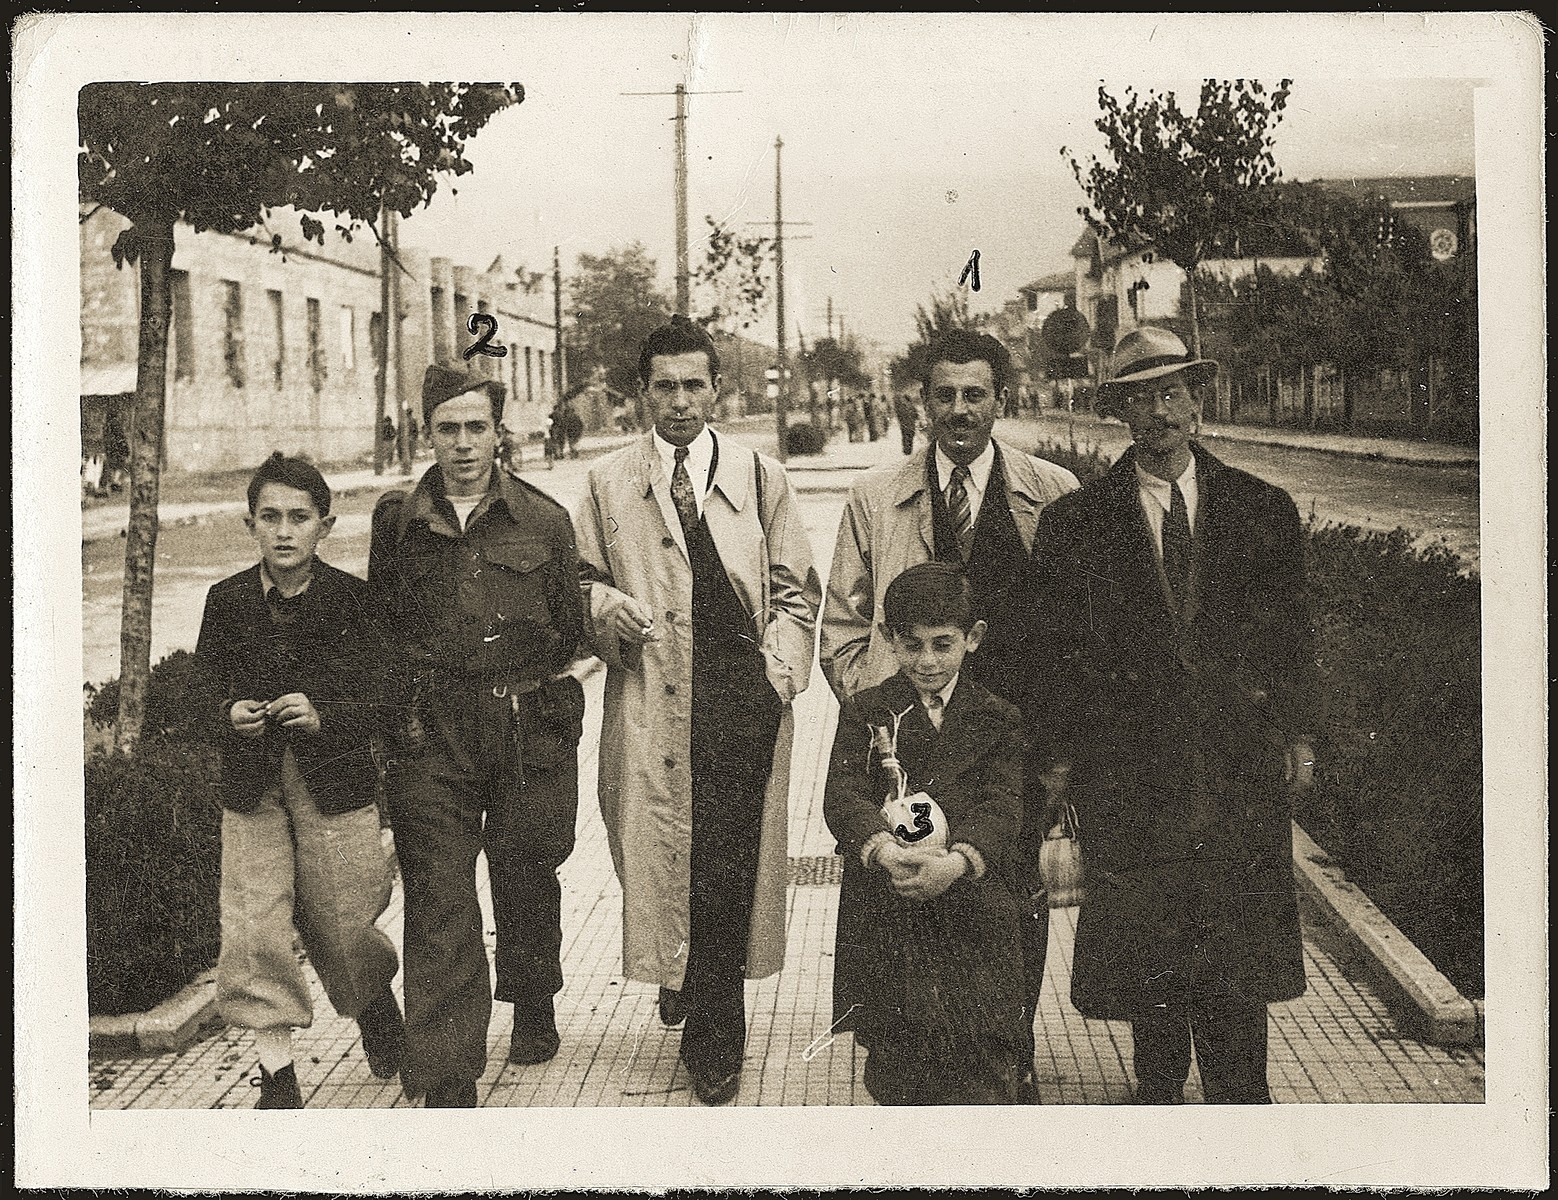 Mosa (Moshe) Mandil, Gavra, and Refik Veseli walk along the streets of Tirana with friends on liberation day.  In 1990 Refik Veseli was recognized by Yad Vashem as one of the Righteous Among the Nations.  Mosa is pictured second from the right, Gavra walks ahead of him, Michael Komforti is on the far left and Refik is second from the left.